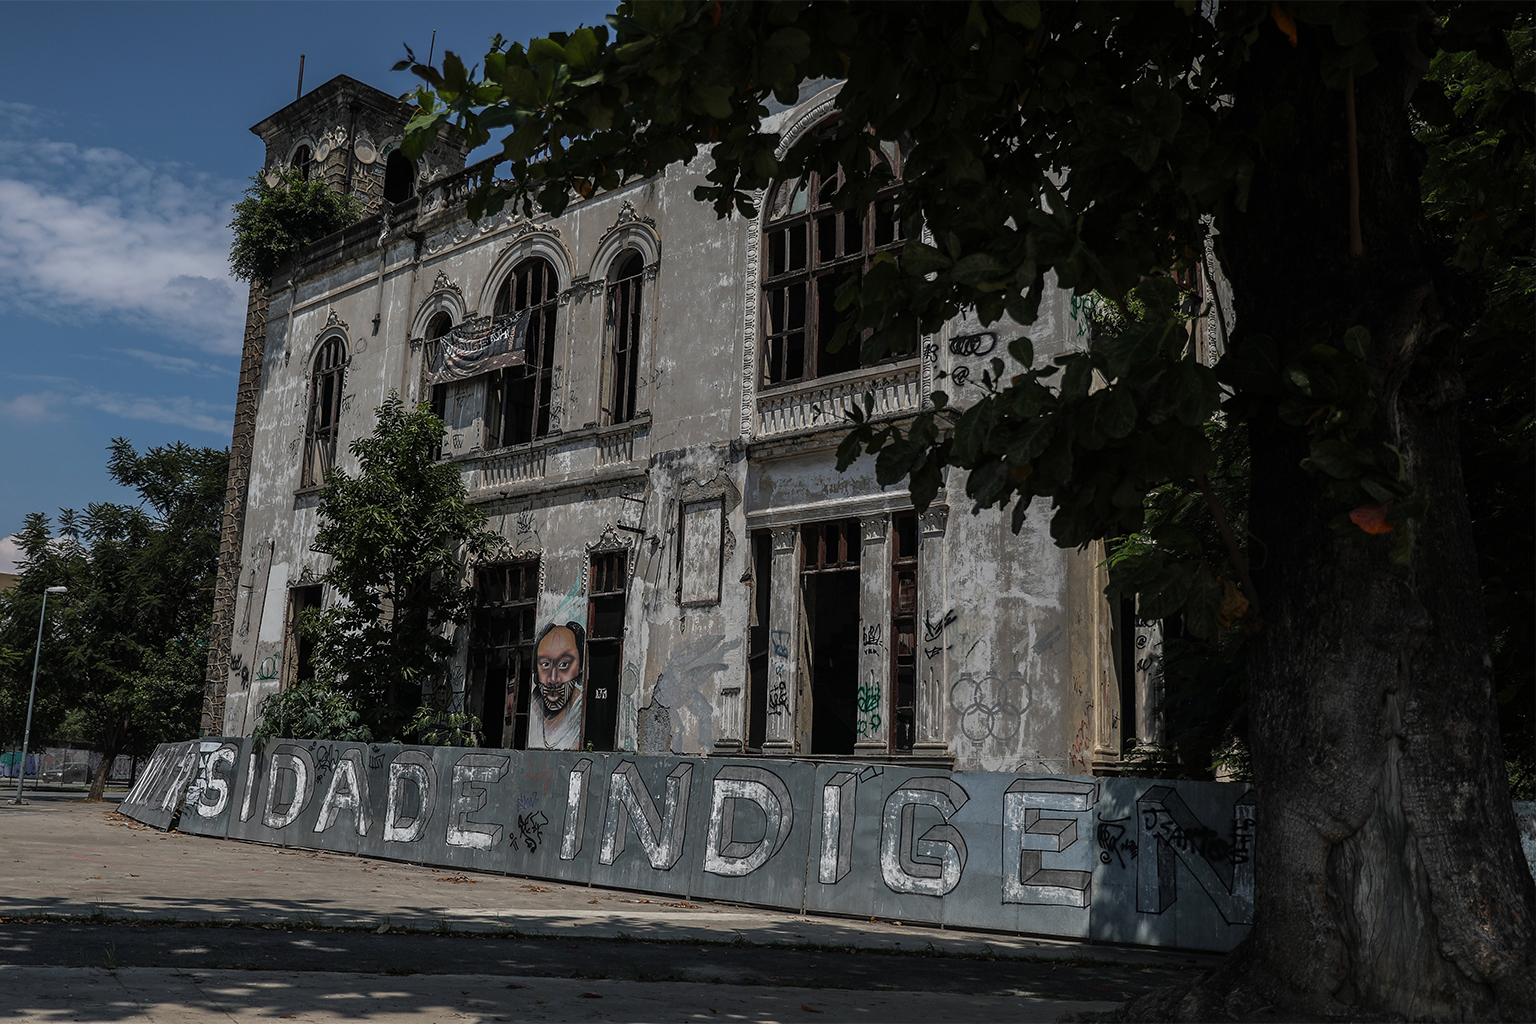 Image of building decorated with street art and graffiti.